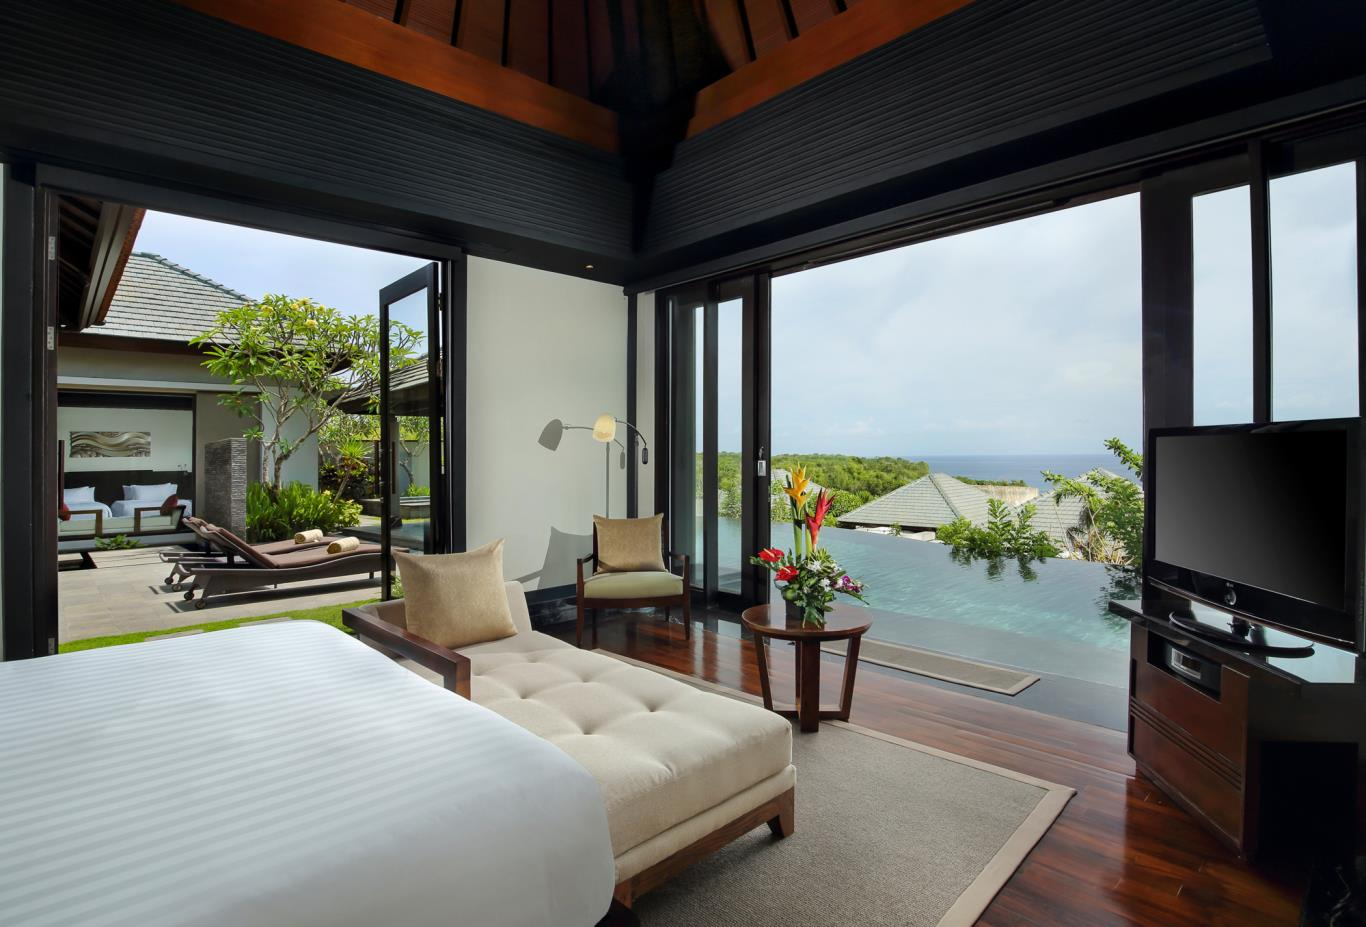 Sanctuary Ocean bedroom